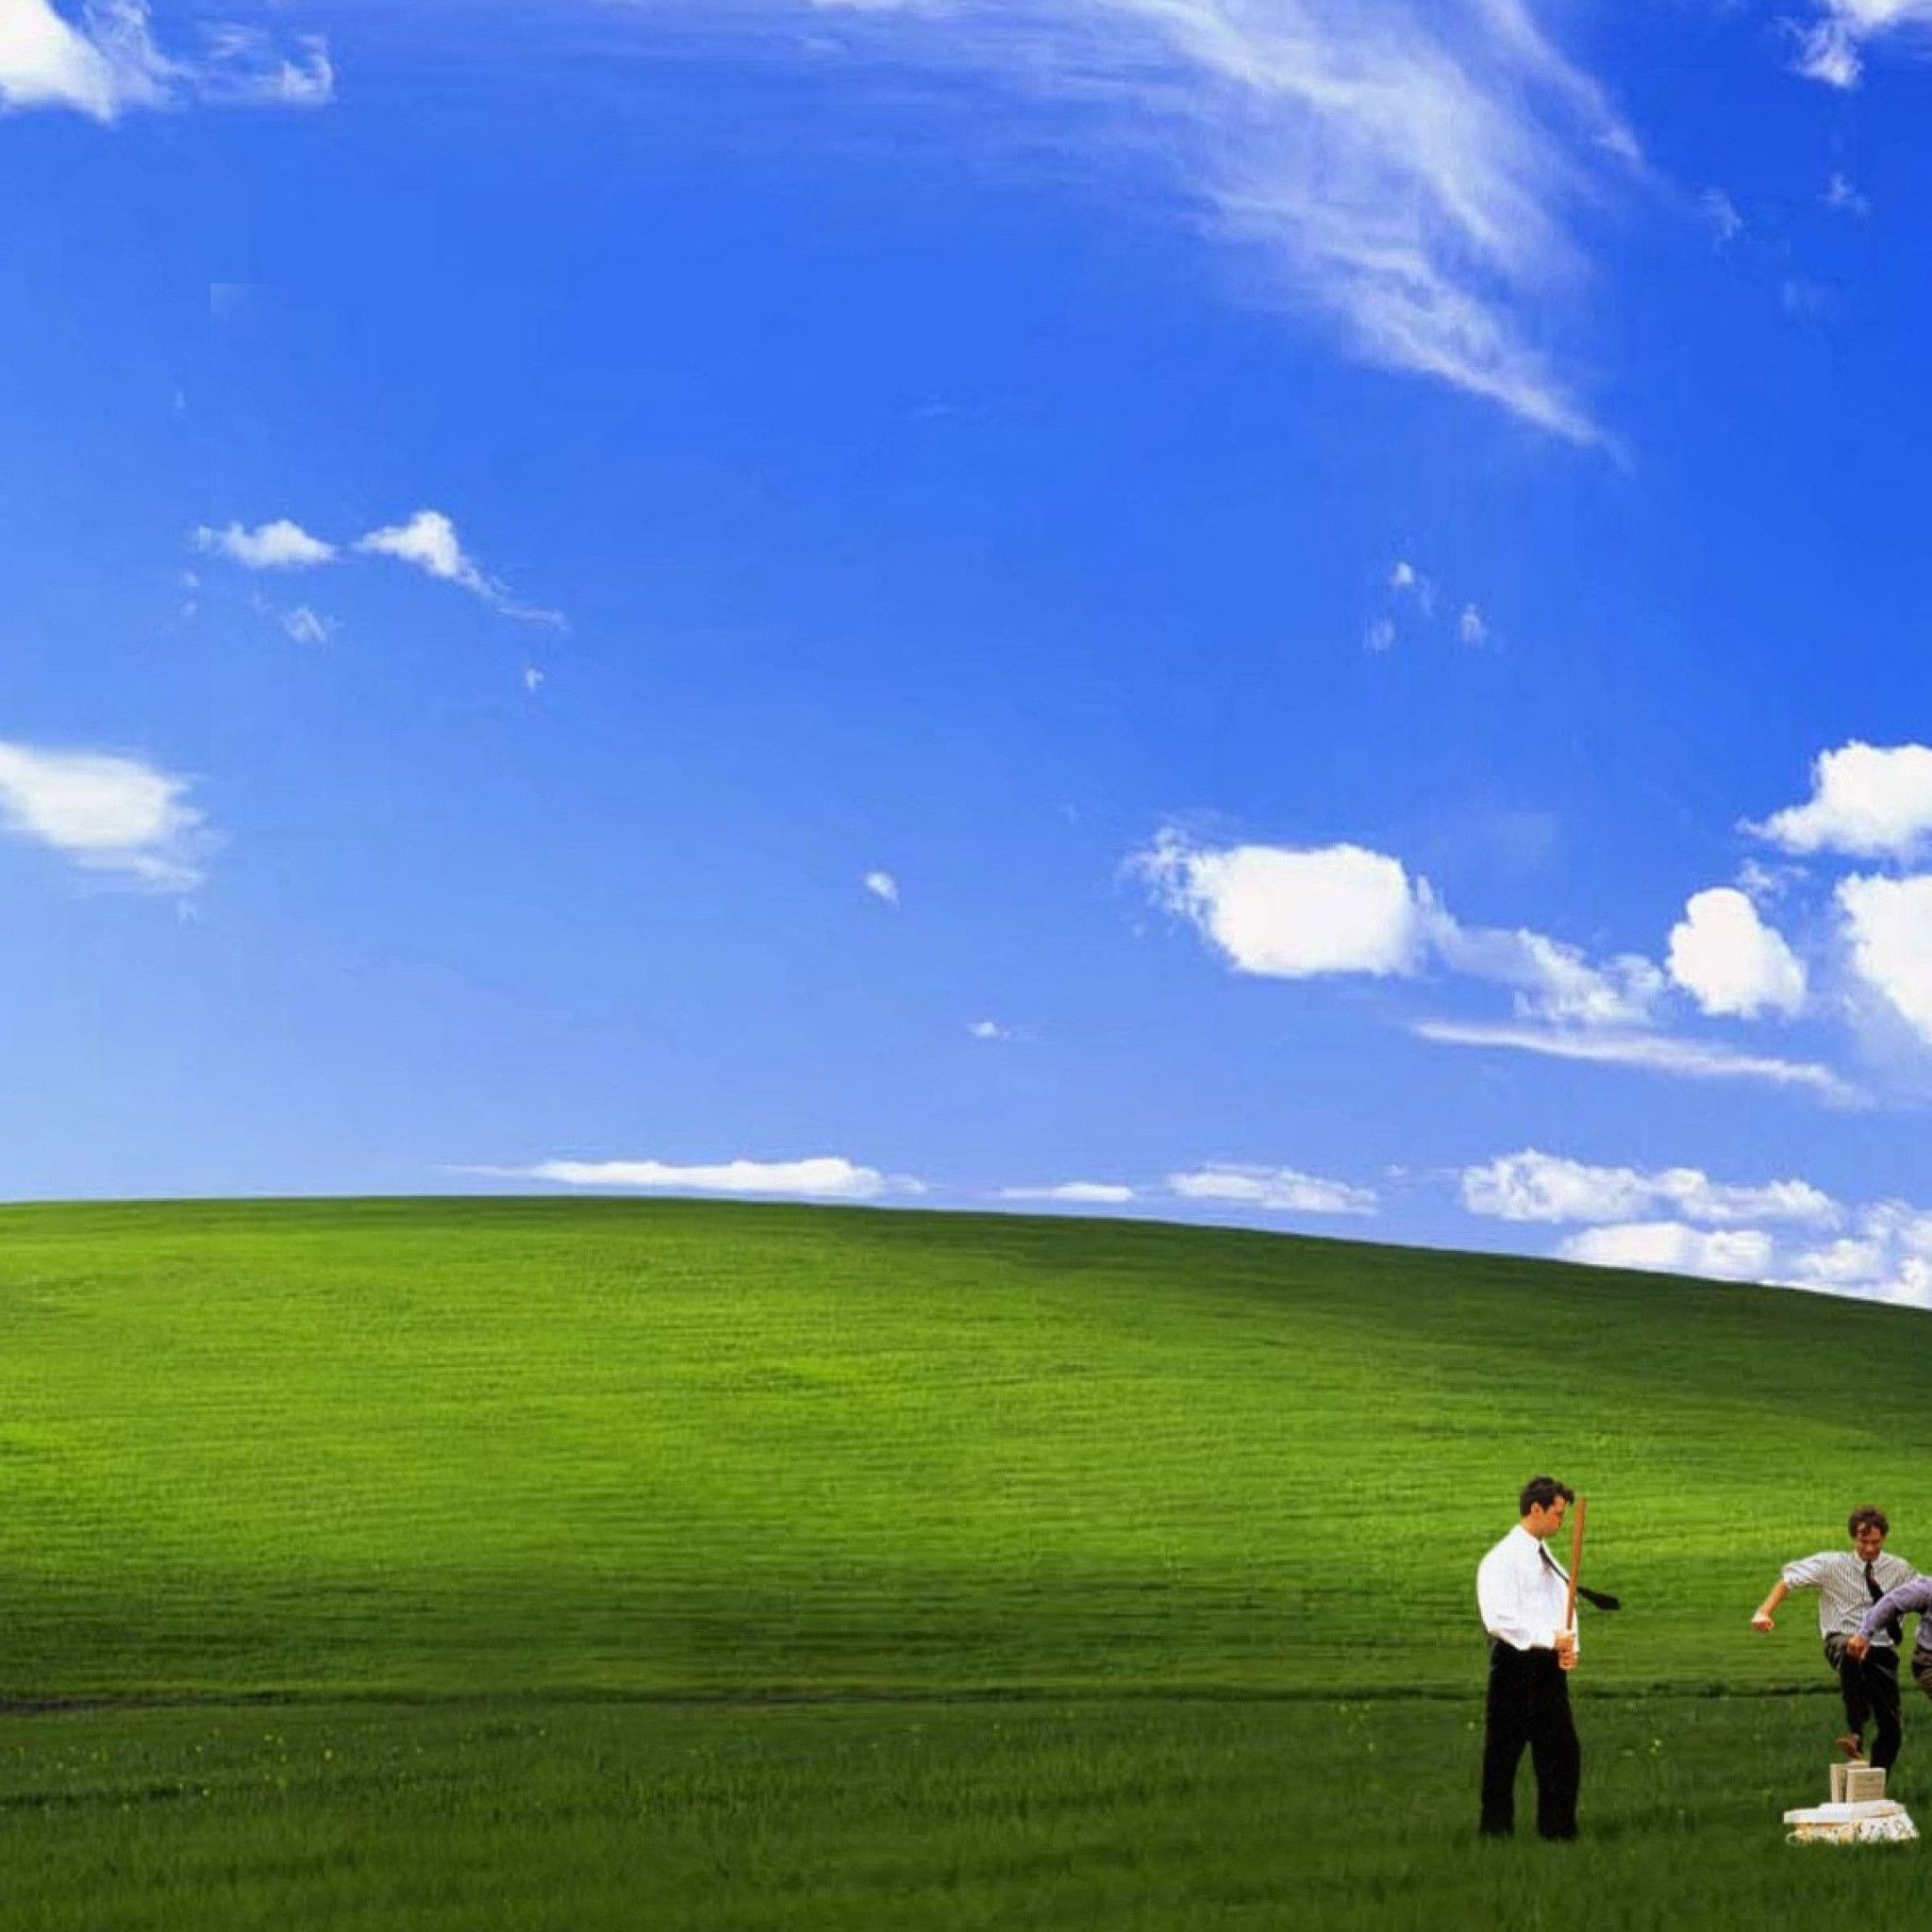 2048x2048 ... Amazing Windows Xp Bliss Wallpaper Download free wallpapers and desktop  backgrounds in a variety of screen